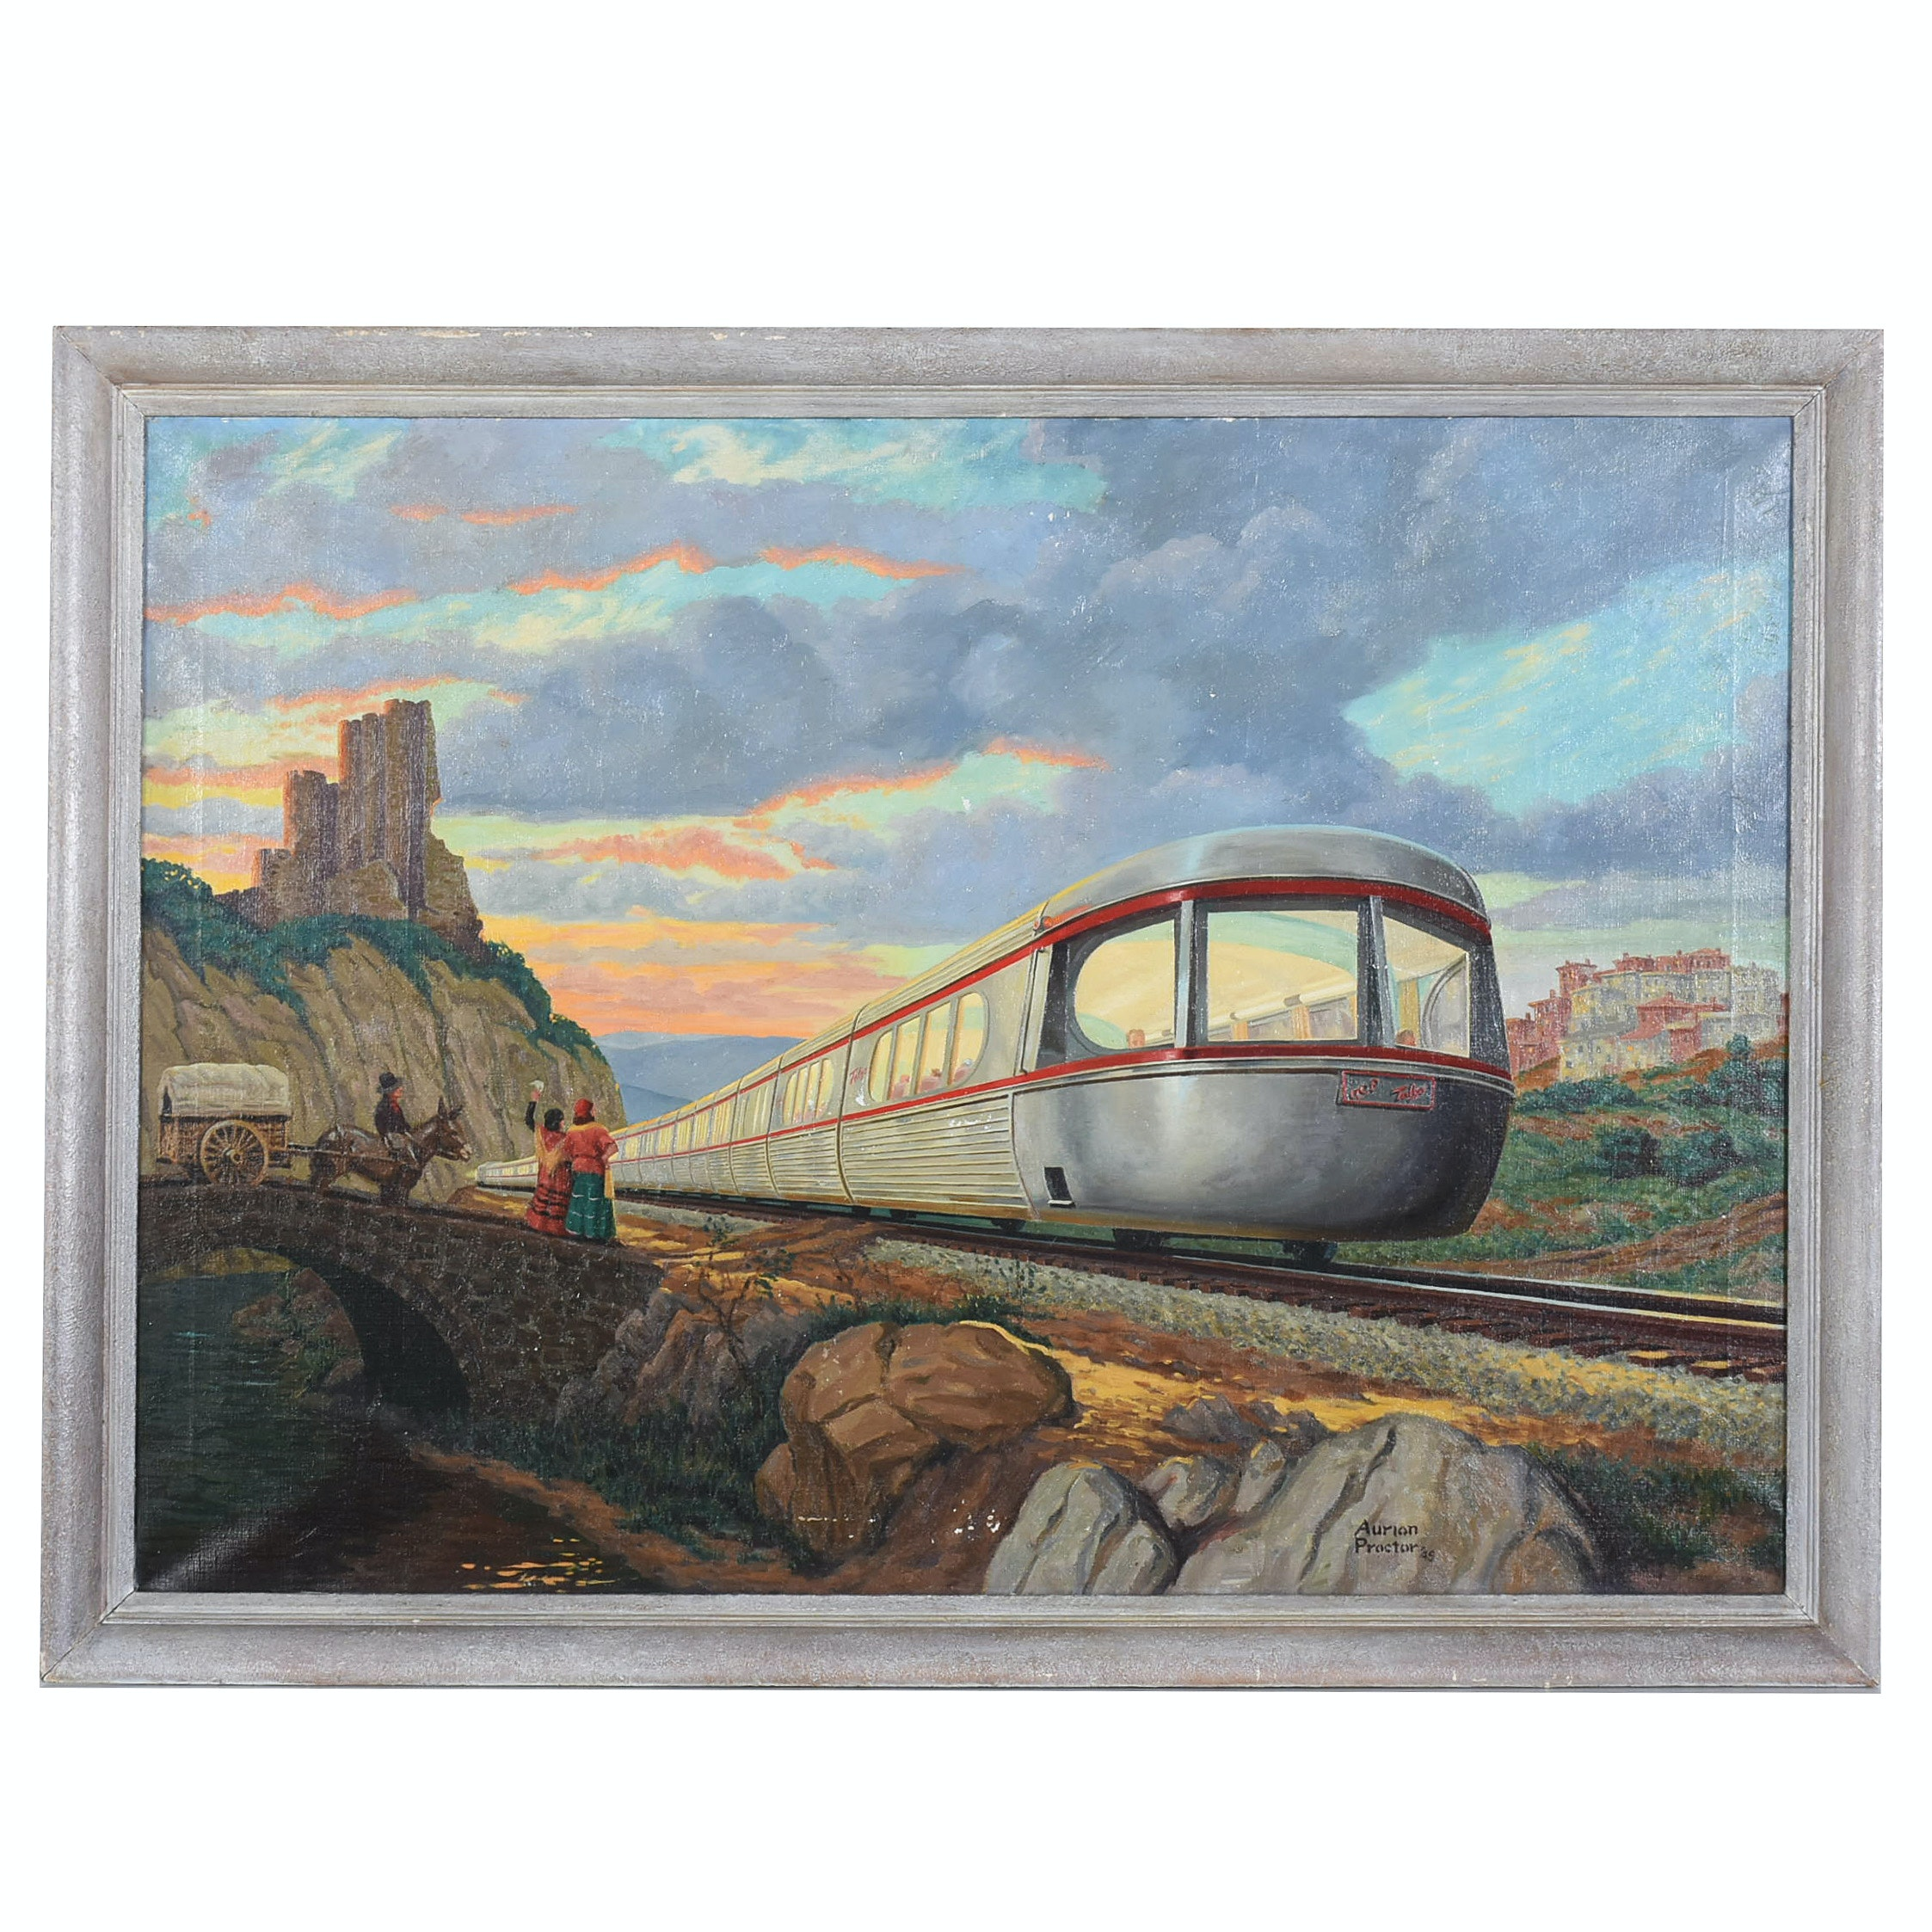 Aurion Proctor 1949 Oil Painting of the Talgo Train